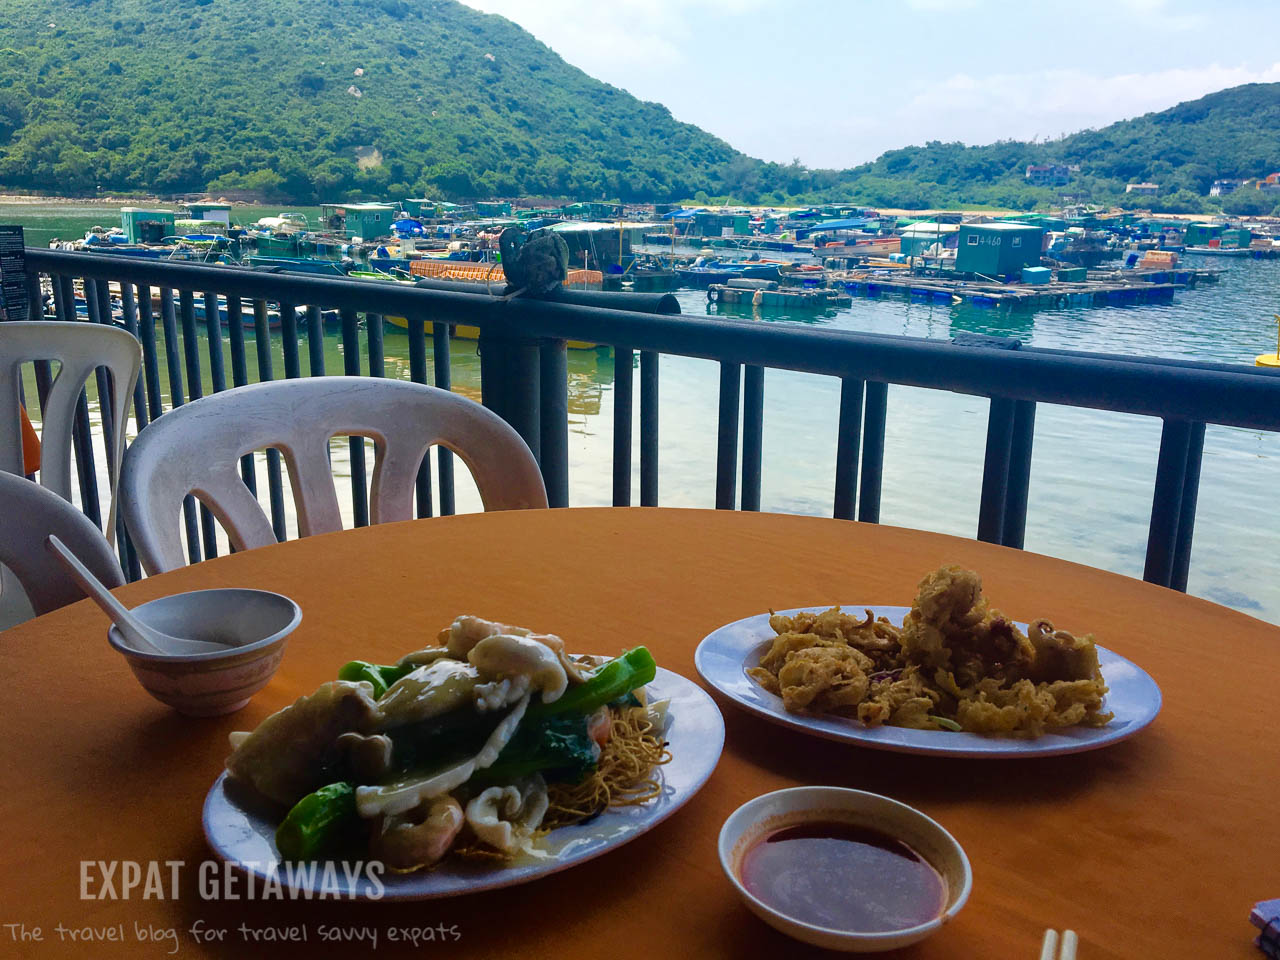 Lamma Island is the place to go for a delicious seafood lunch by the water. Expat Getaways, First Time Hong Kong Survival Guide - Chinese food.